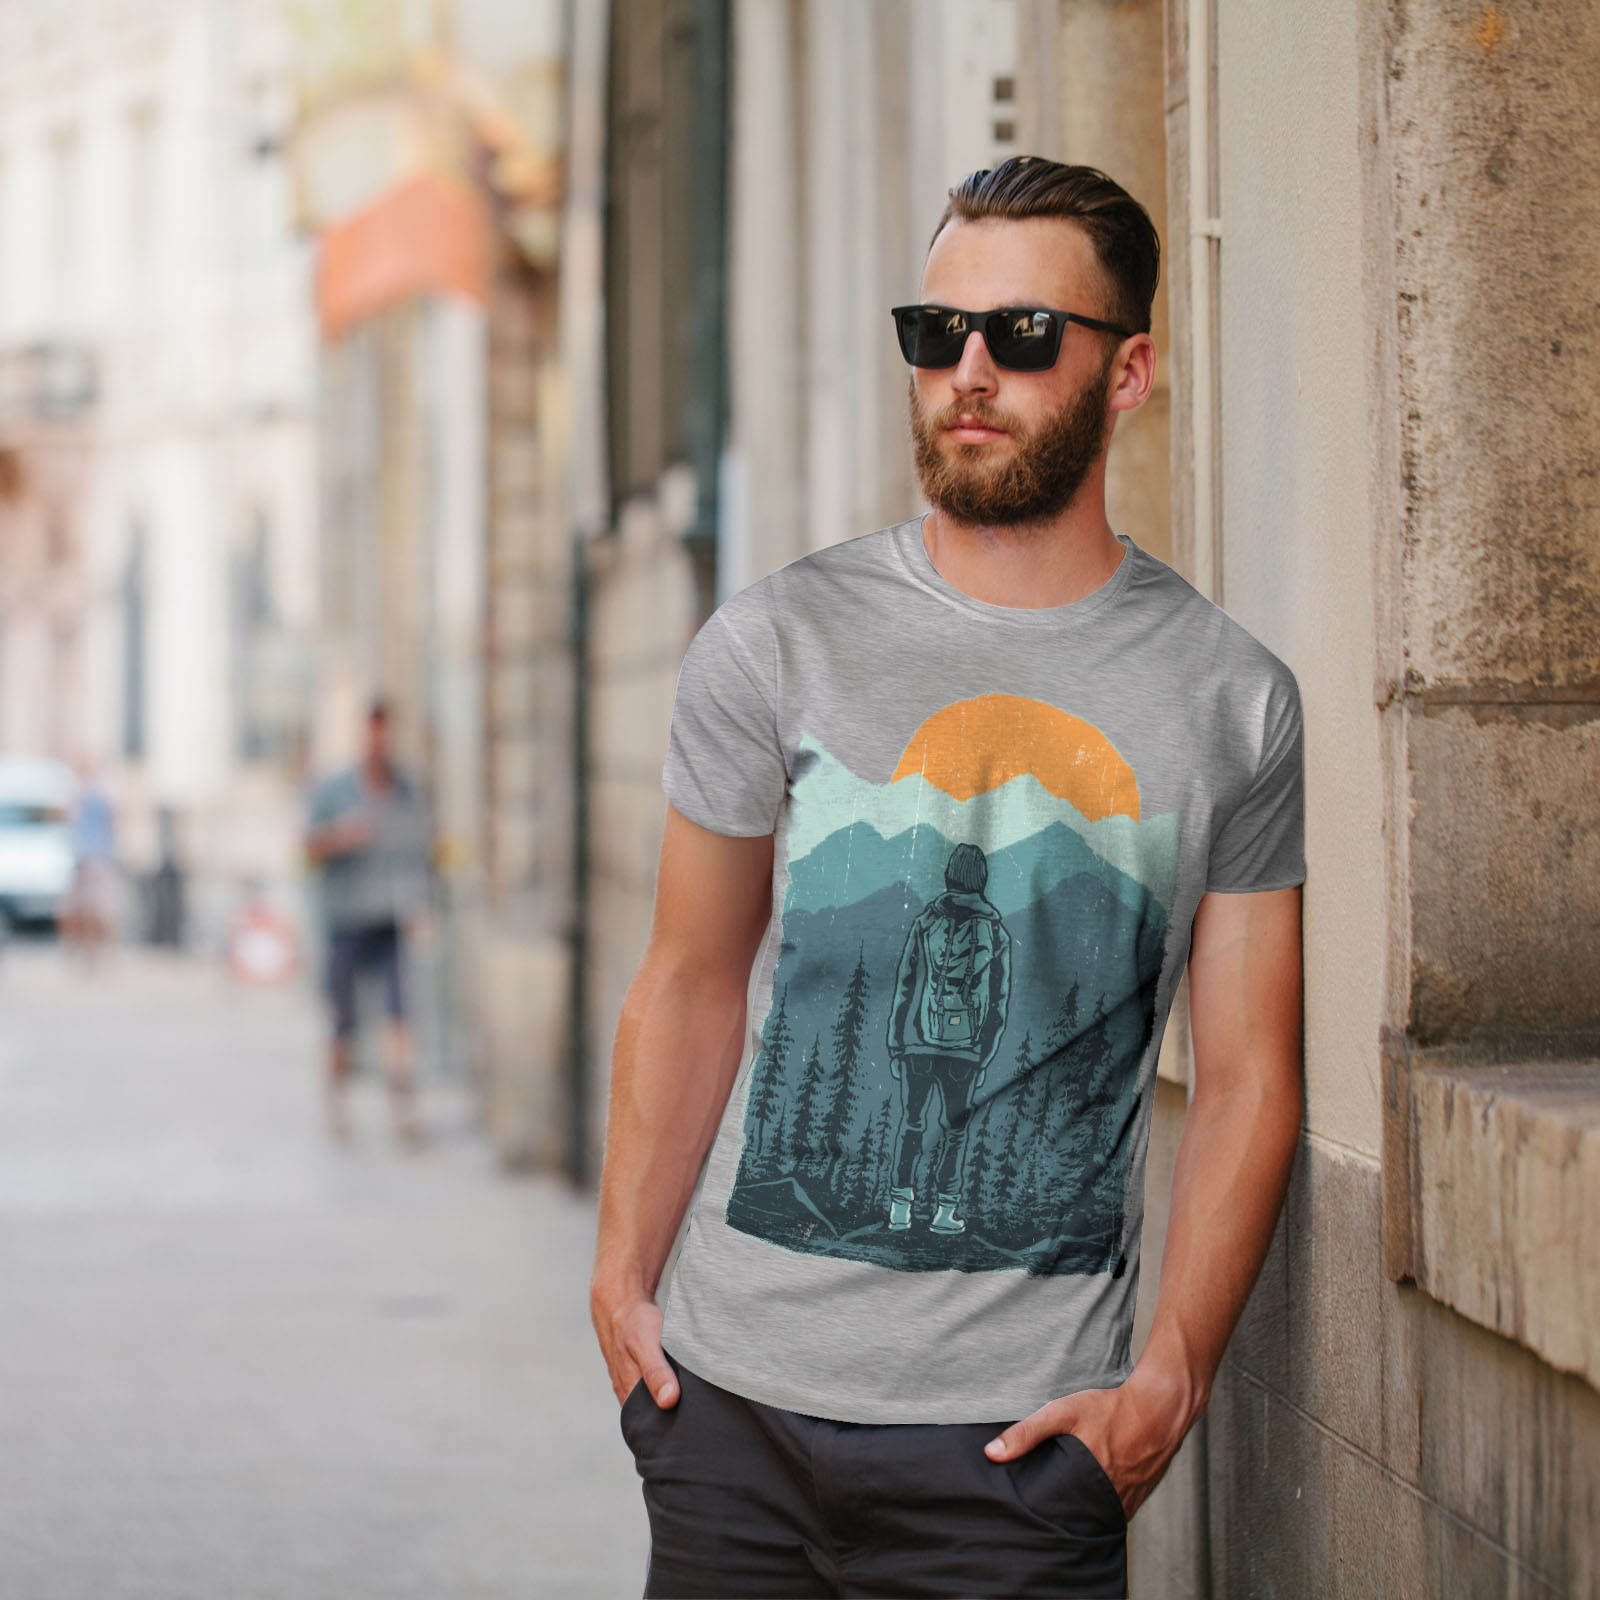 Wellcoda-SUNSET-Wilderness-CAMP-Da-Uomo-T-shirt-Wild-design-grafico-stampato-T-shirt miniatura 17